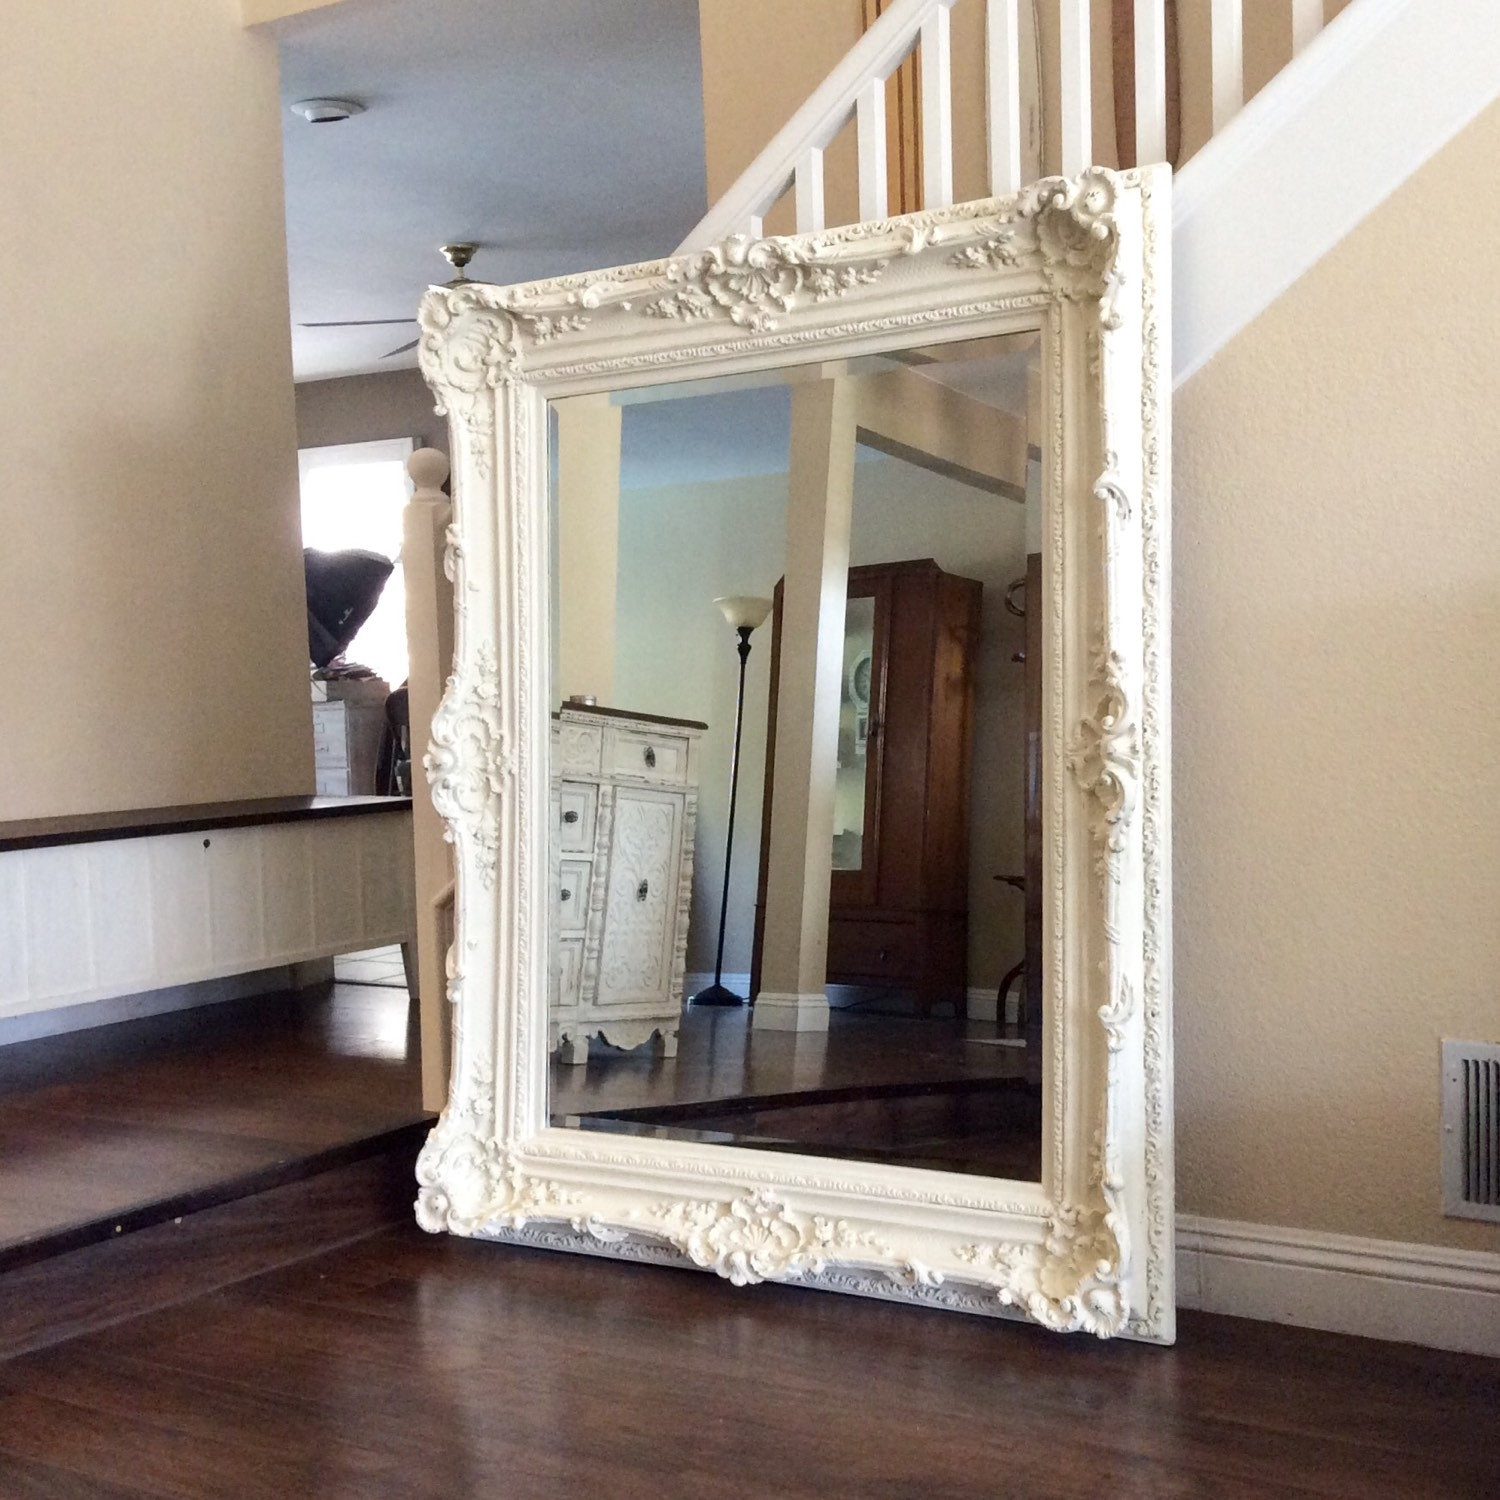 15 Large Ornate Wall Mirrors Mirror Ideas